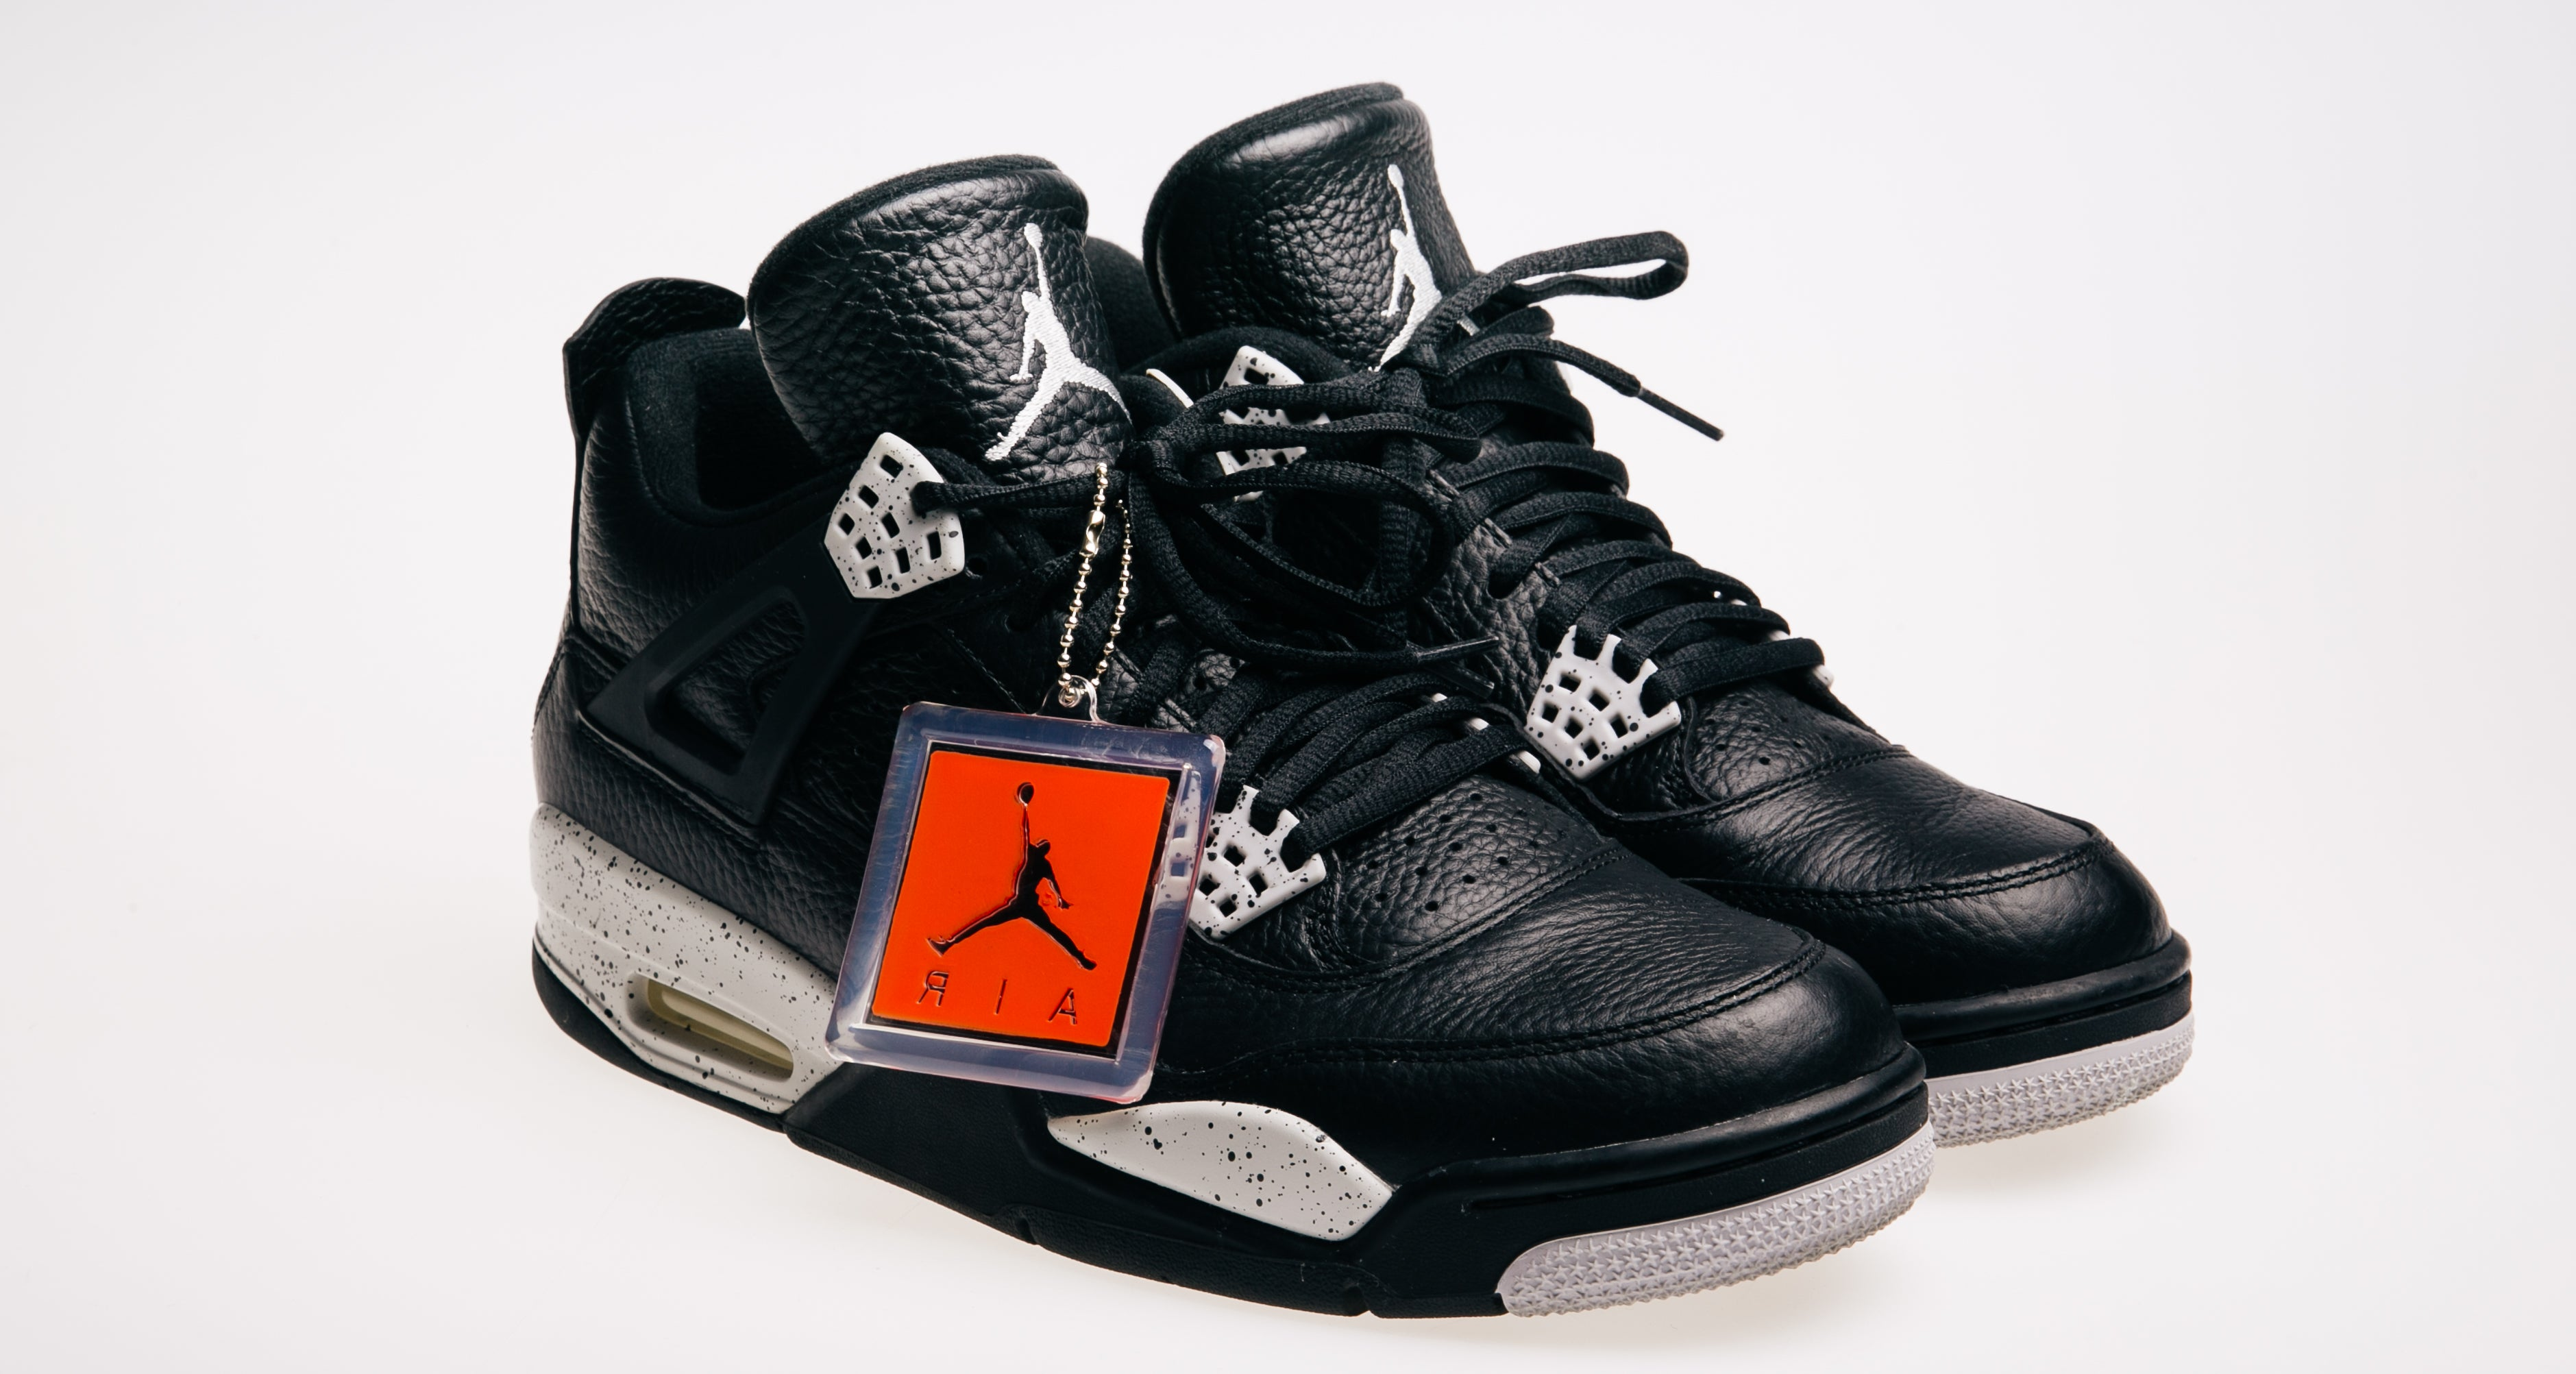 """9208cc2a92ab One of the hottest pairs of sneakers to own in 2015 is the """"Remastered"""" Air  Jordan 4 Retro  Tech Grey . The pair makes its reappearance more than 15  years ..."""